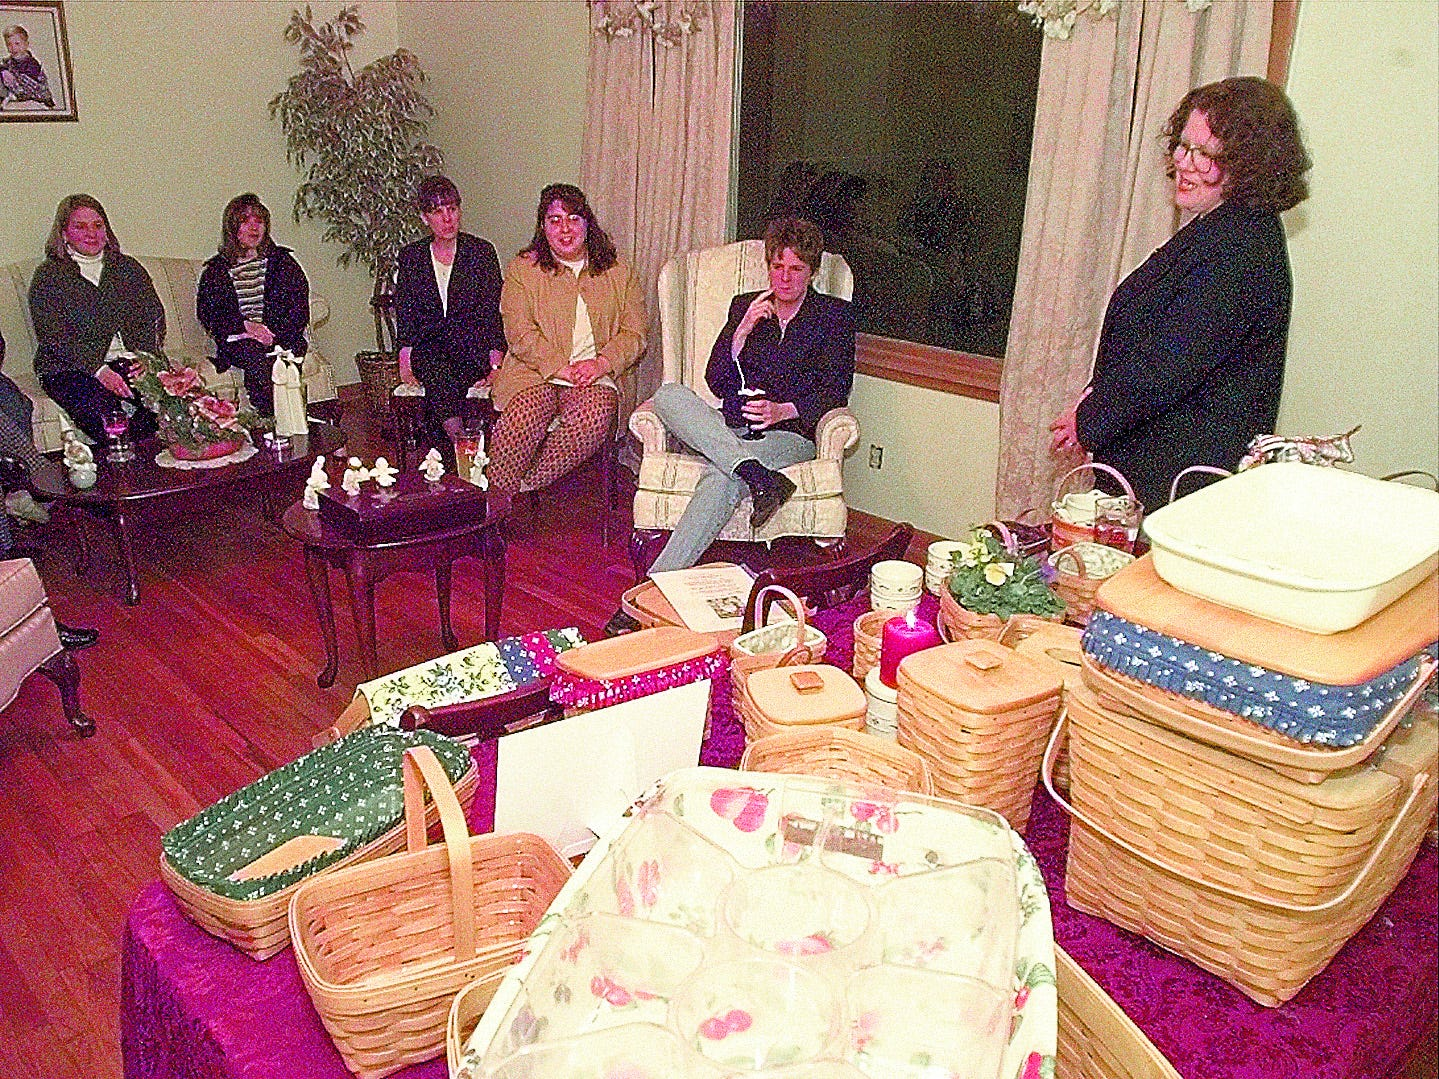 Chris Powers (right) discusses the variety of baskets available from Longaberger during a home show in 1999.